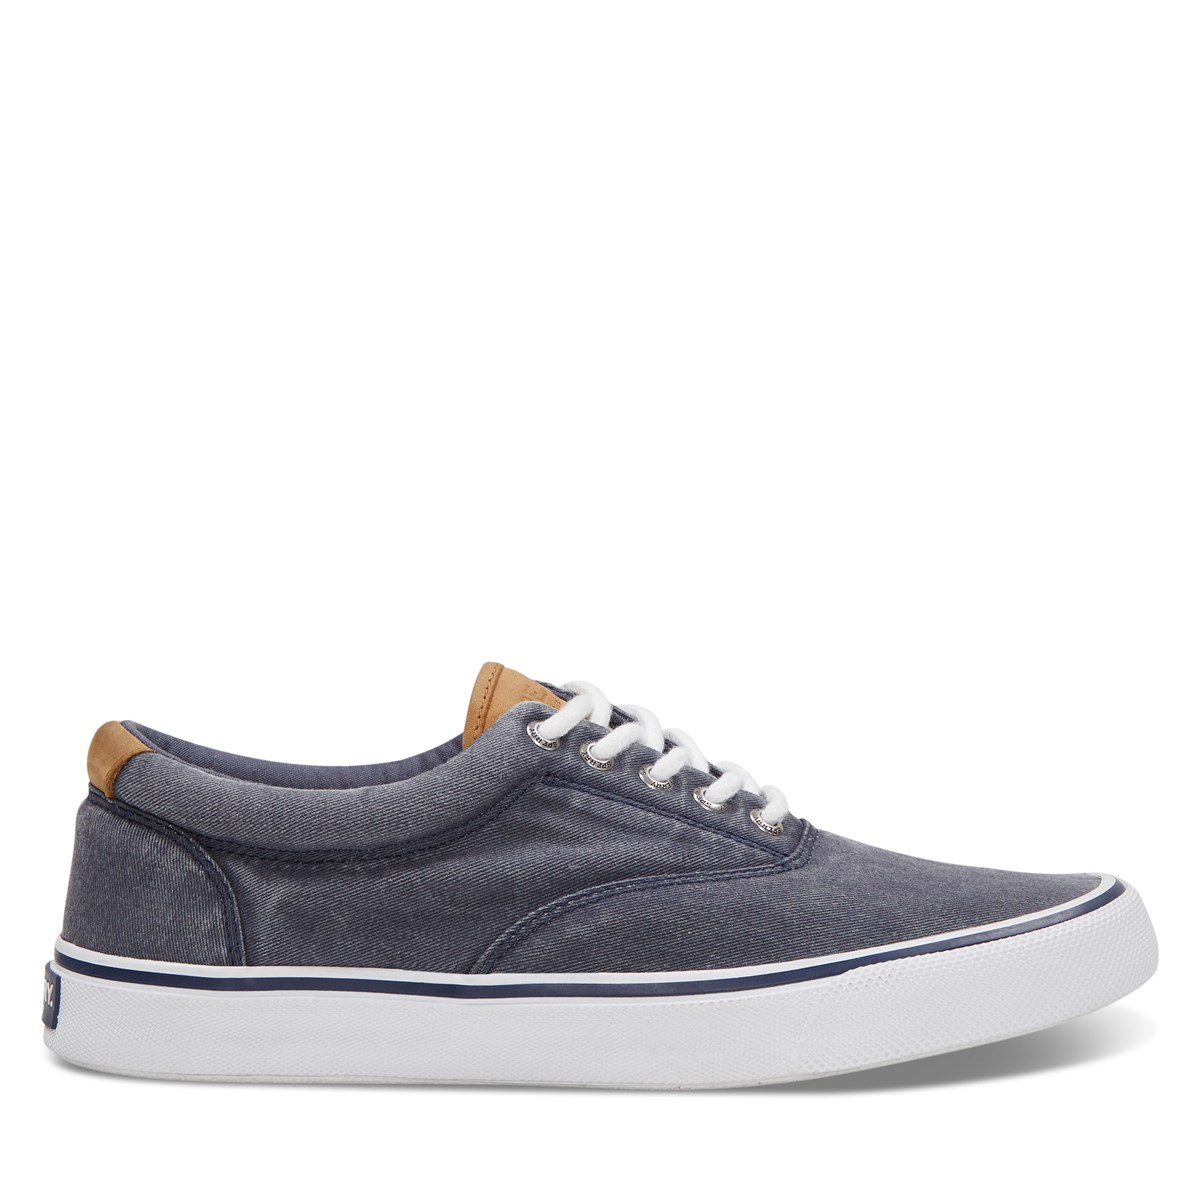 Men's Stripper II CVO Sneakers in Navy